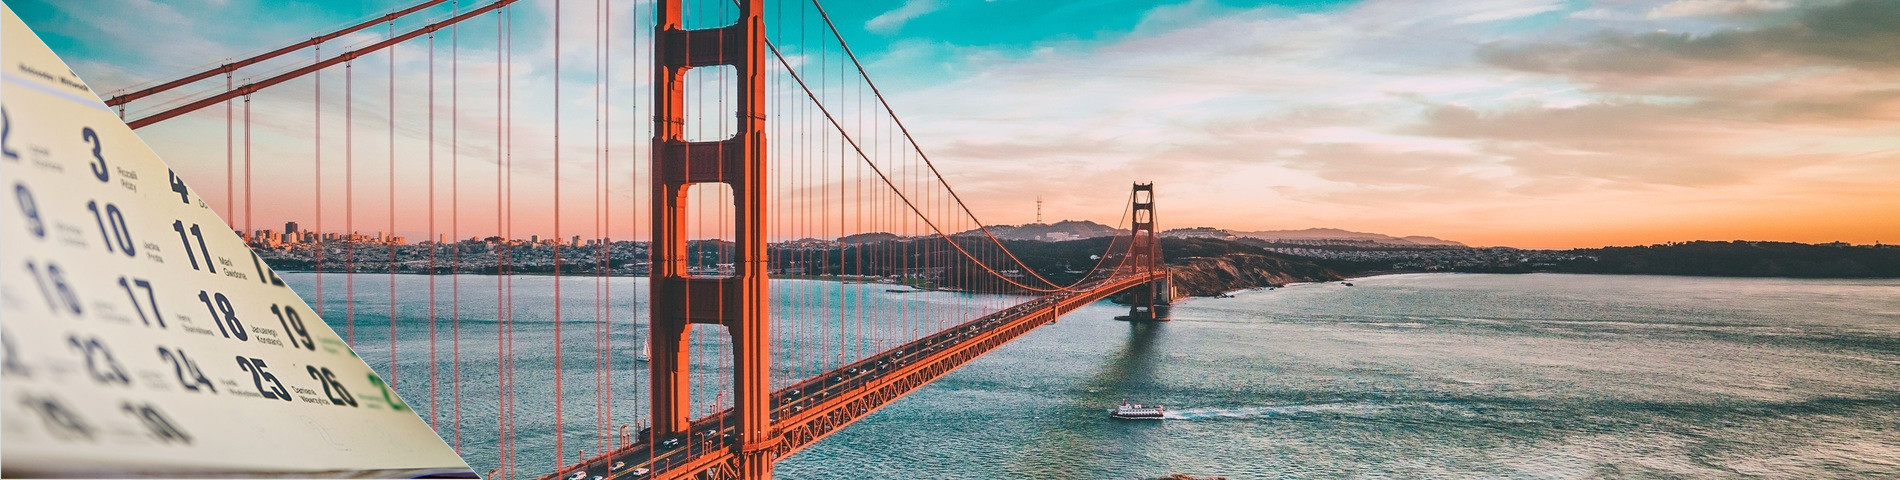 San Francisco - Inglese annuale